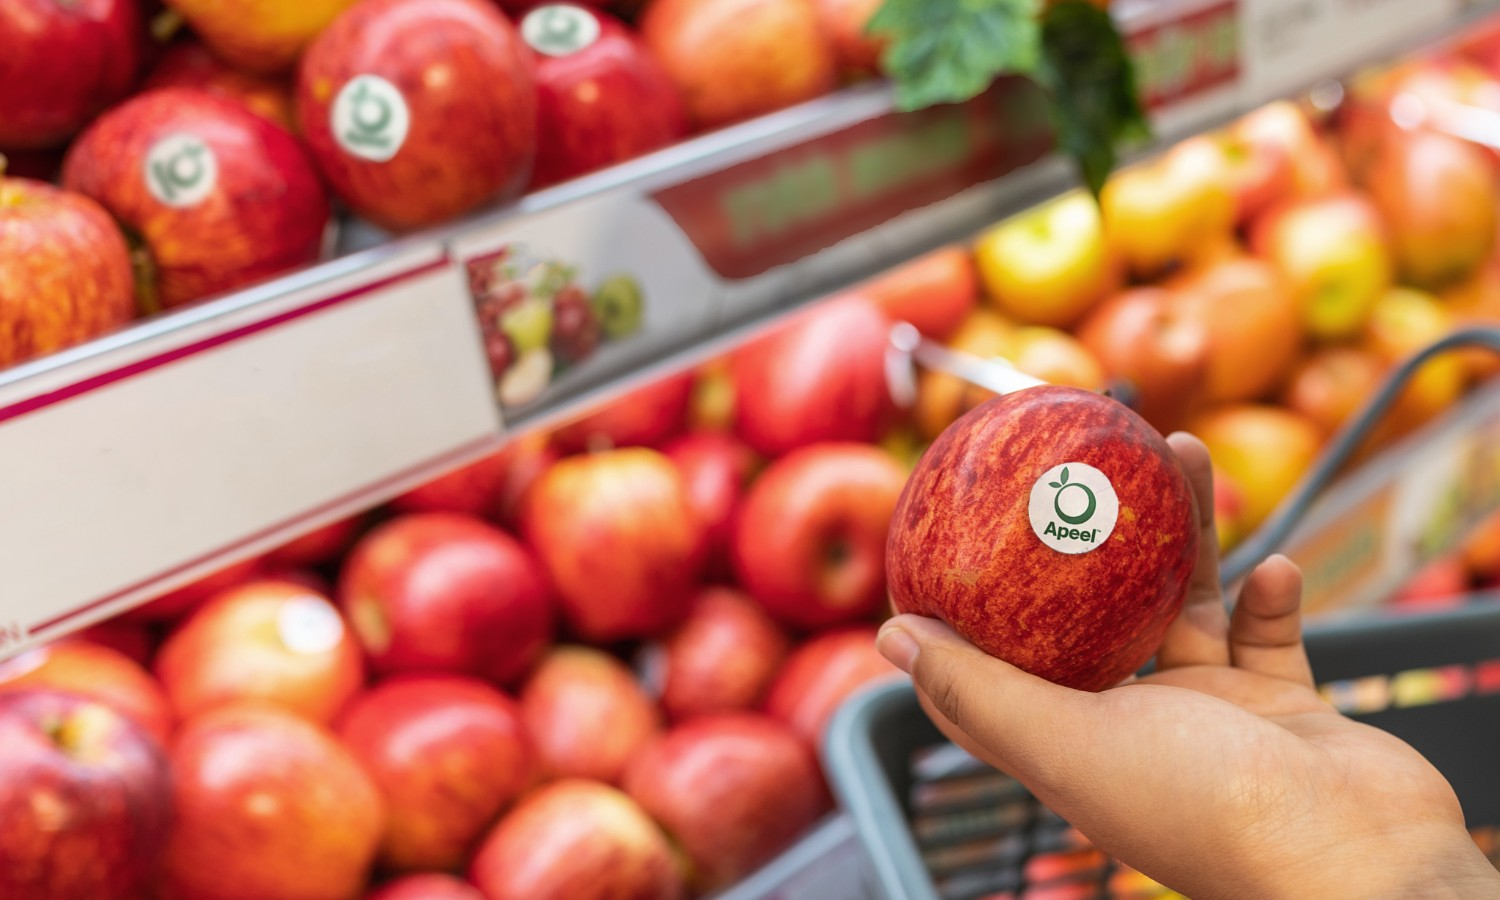 Apeel Sciences, whose edible coatings keep produce fresher longer, announced US$250 million in new funding. Their mission is to fight food waste globally.